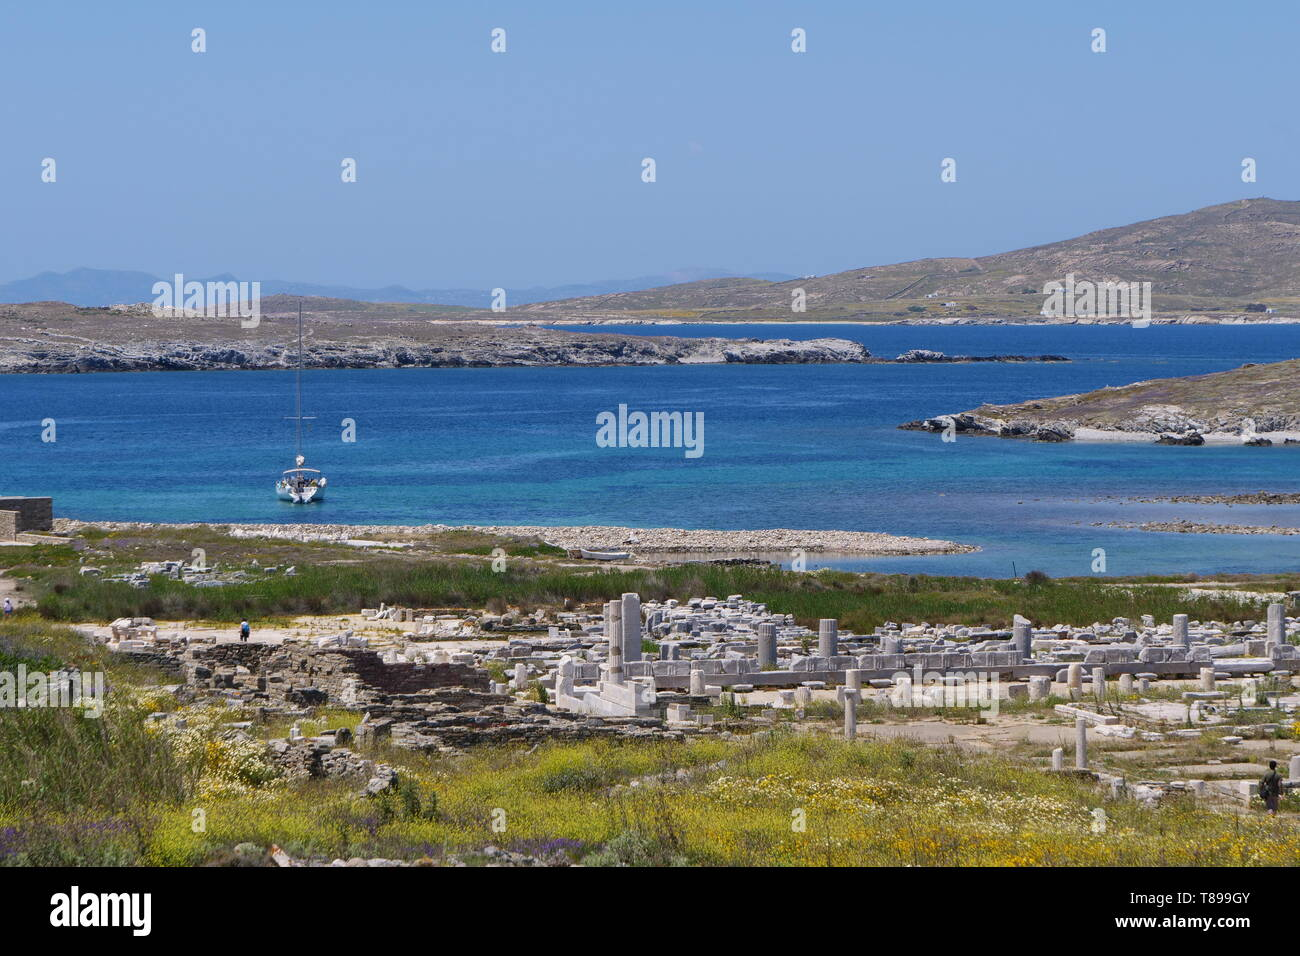 Delos  3rd May, 2019  Photo taken on May 3, 2019 shows the